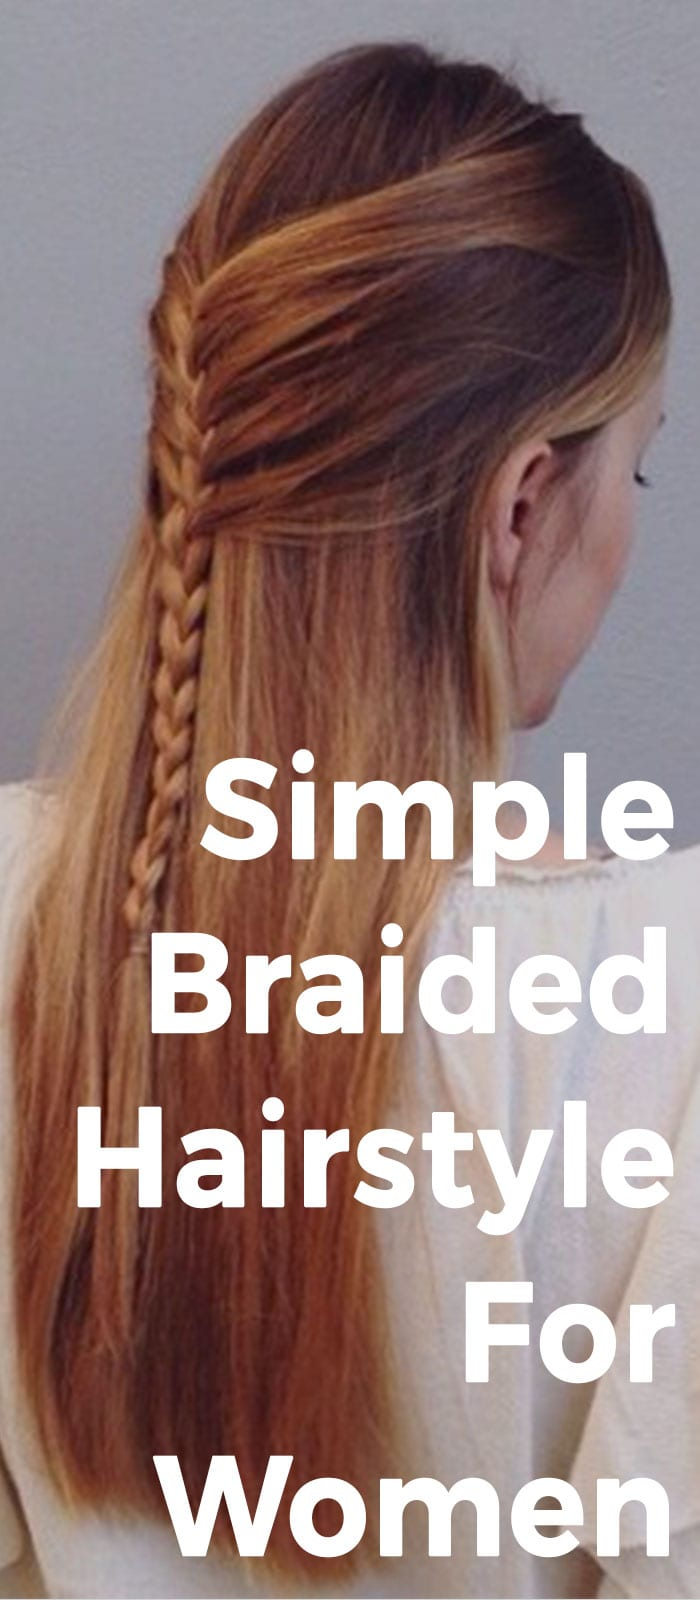 Simple Braided Hairstyle For Women